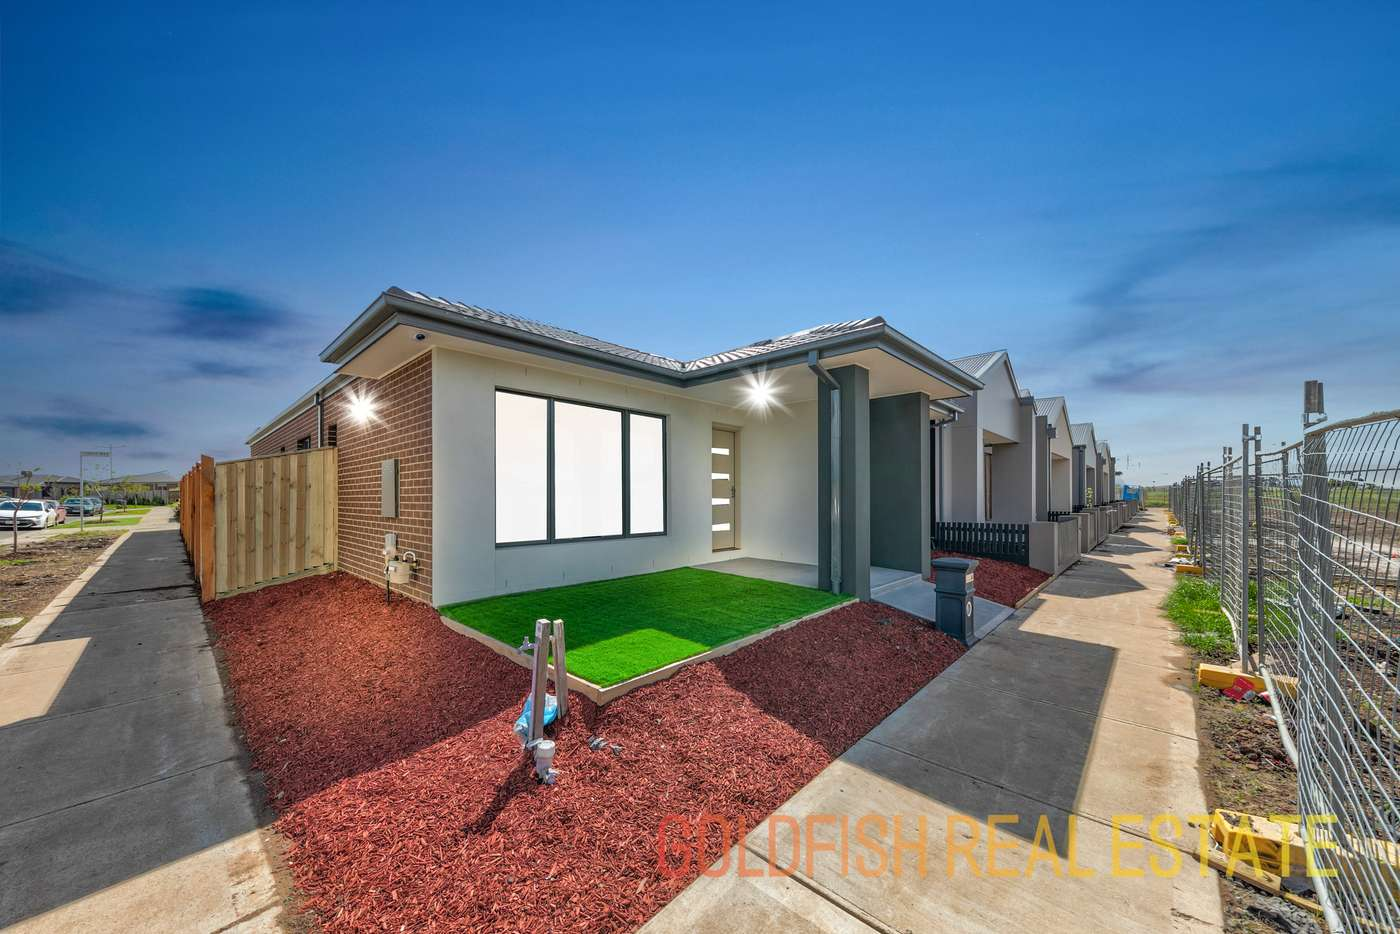 Main view of Homely house listing, 2 Trove Way, Tarneit VIC 3029